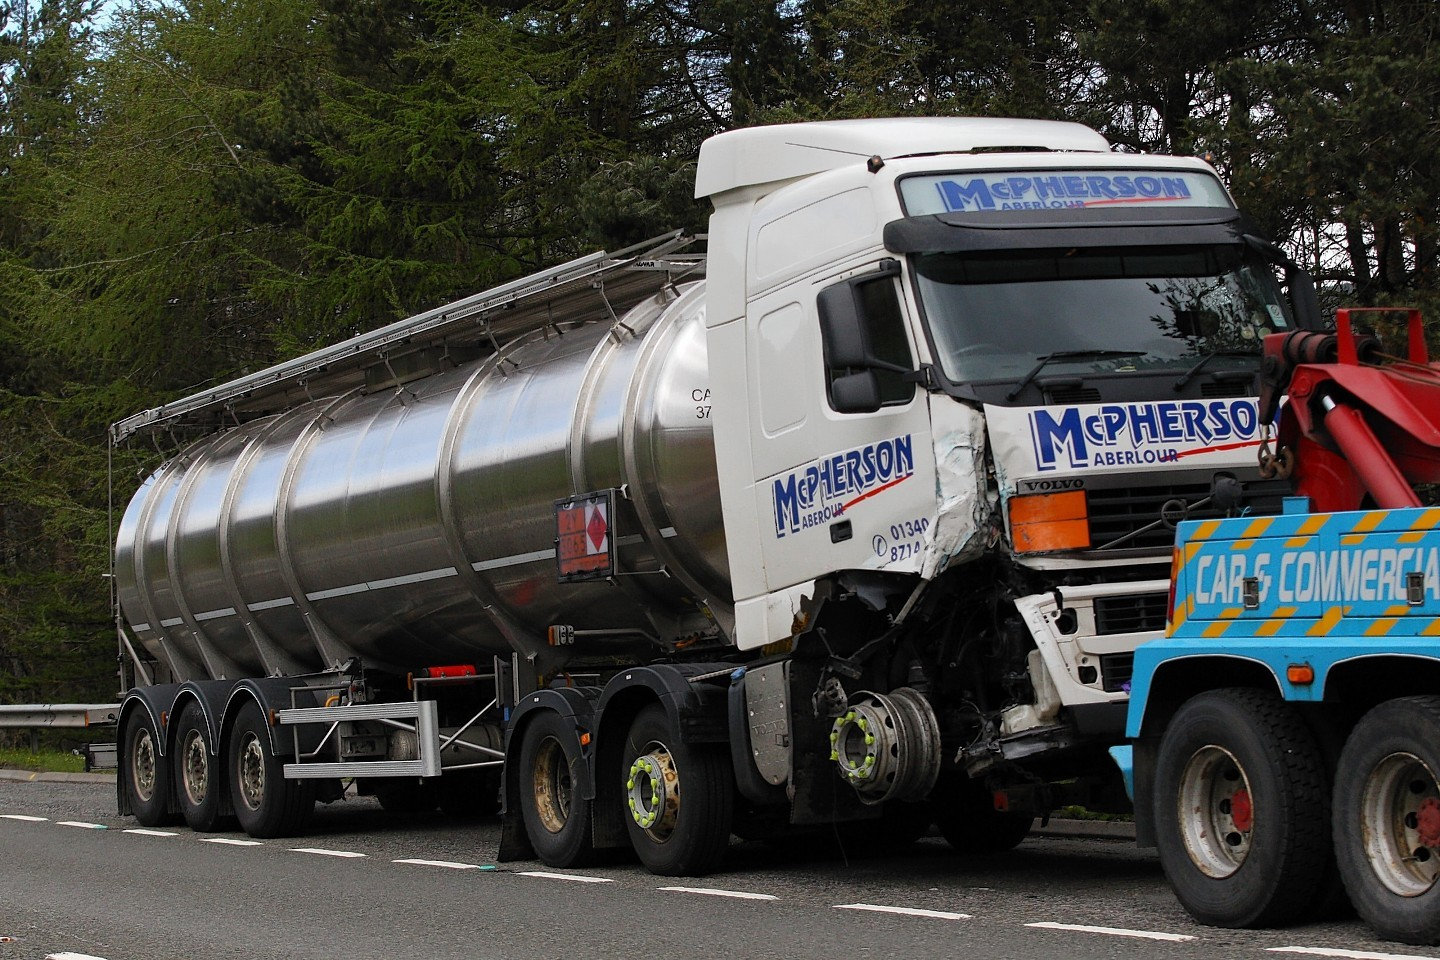 The lorry involved in Thursday's crash